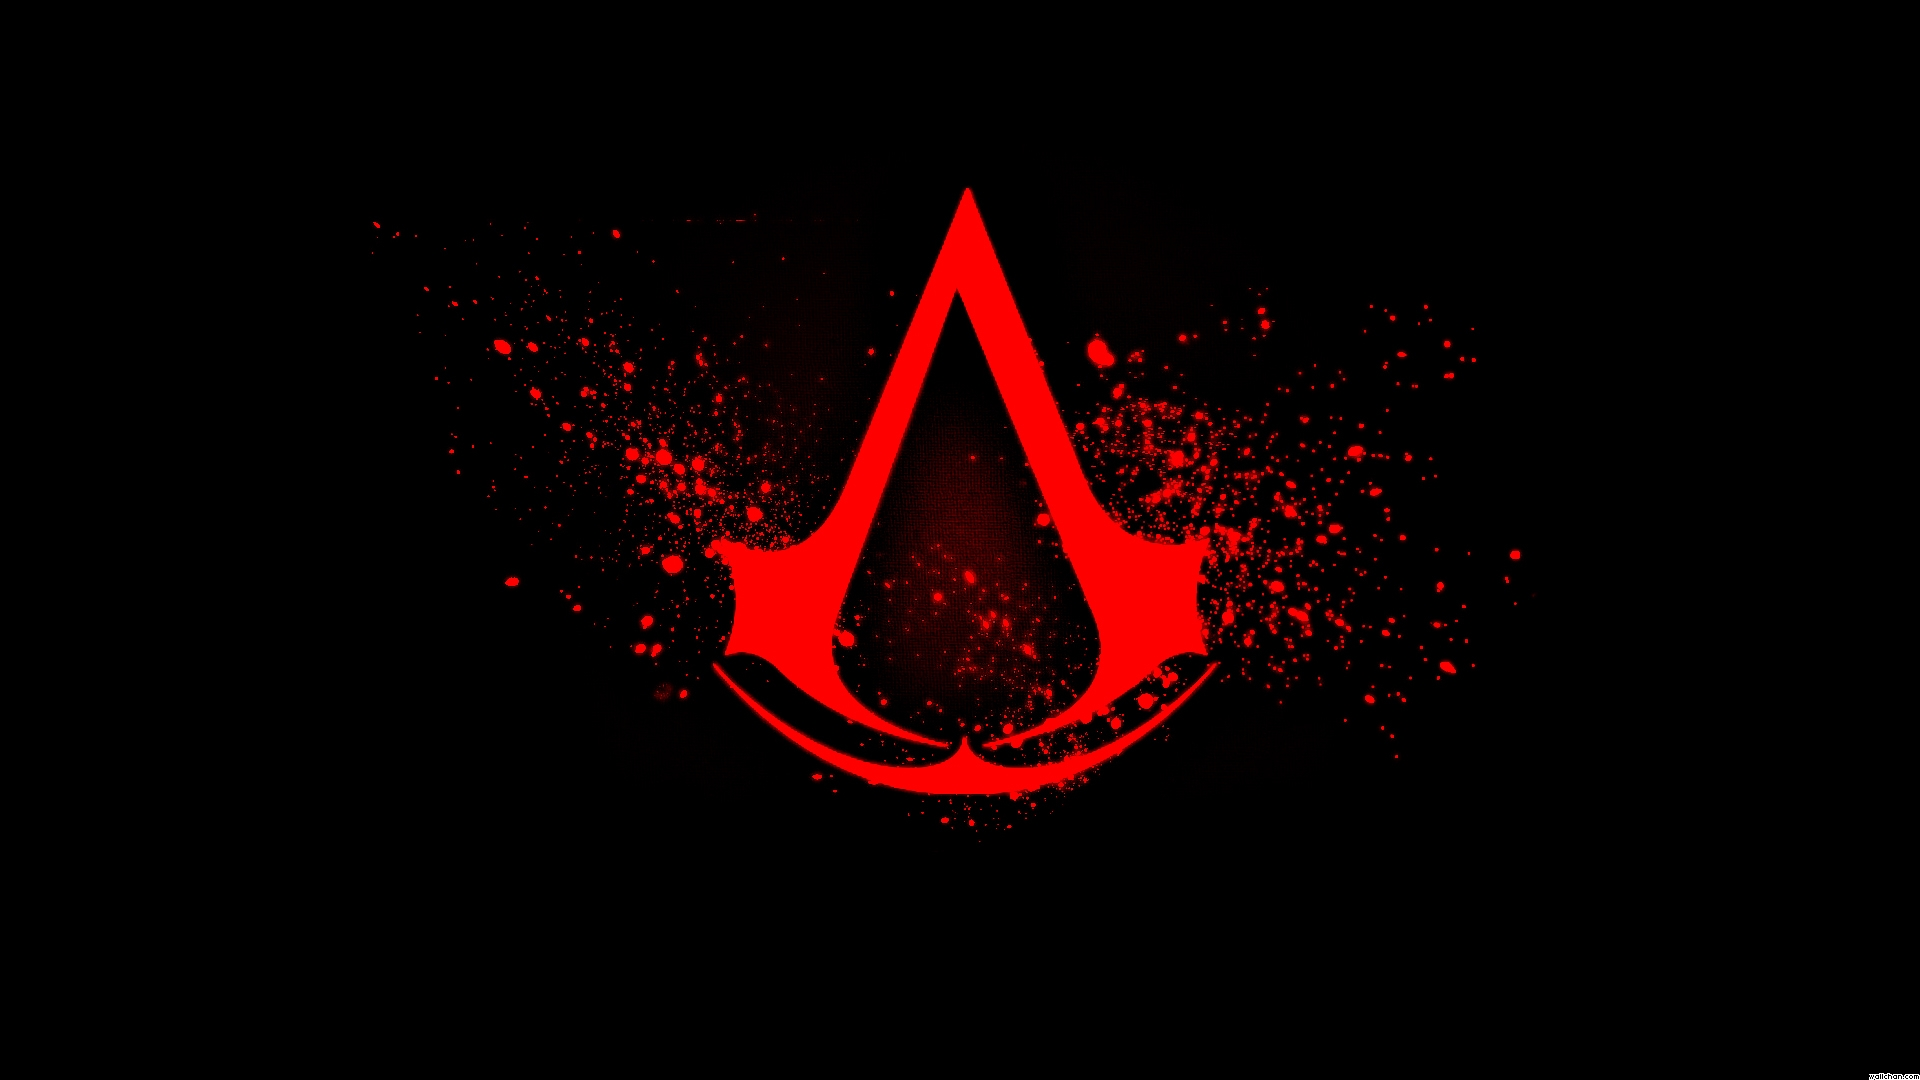 Image - 8443-red-assassins-creed-symbol.jpg - Holic Wiki